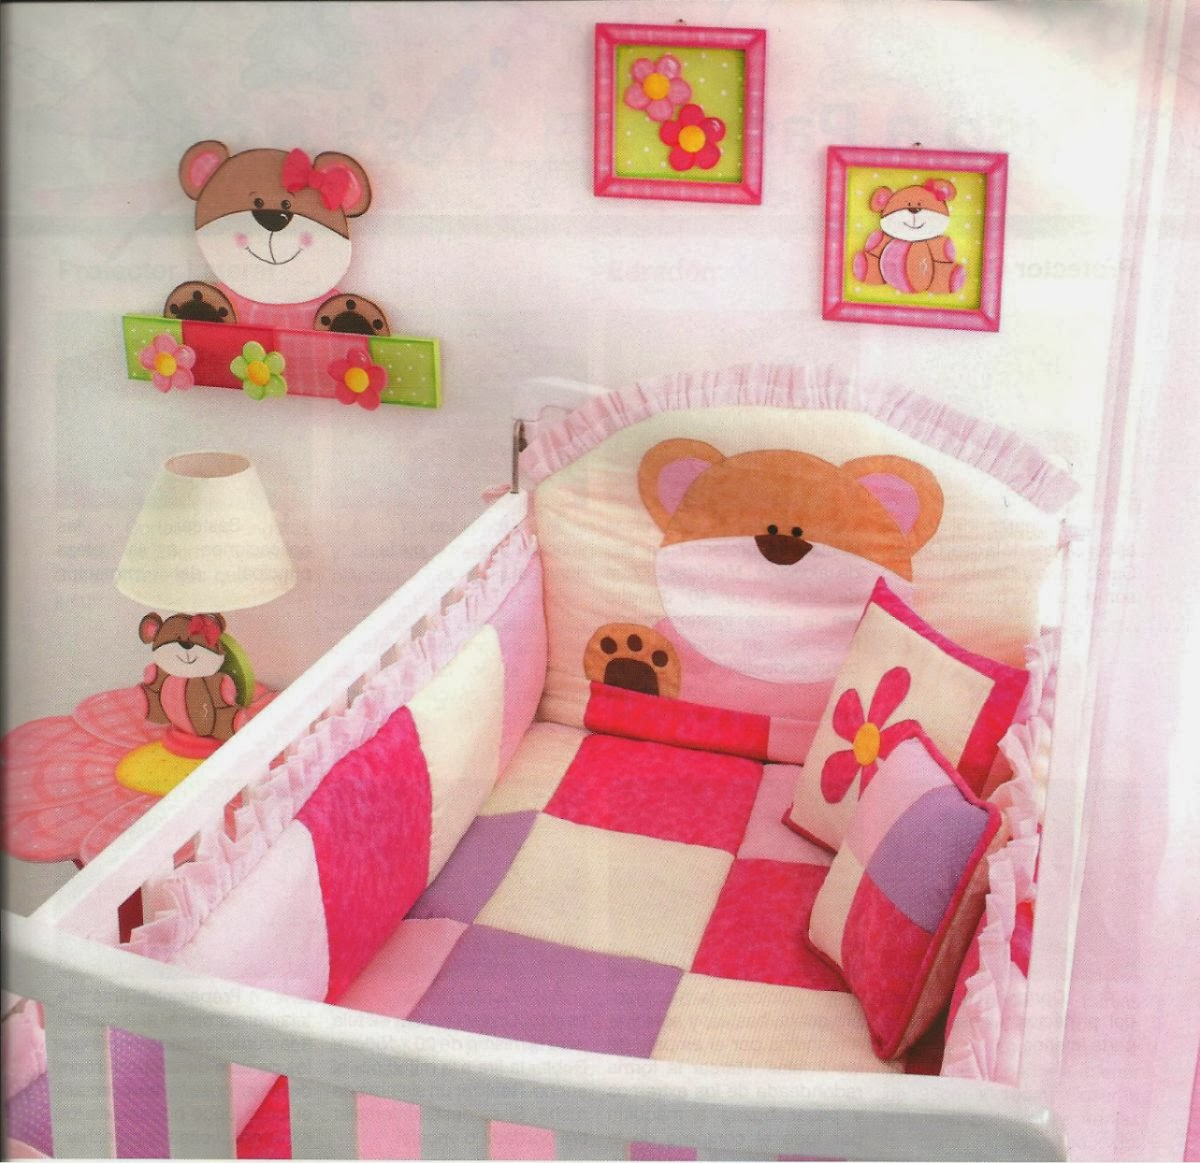 Imagenes fantasia y color como decorar el cuarto del bebe for Decoracion de mi habitacion